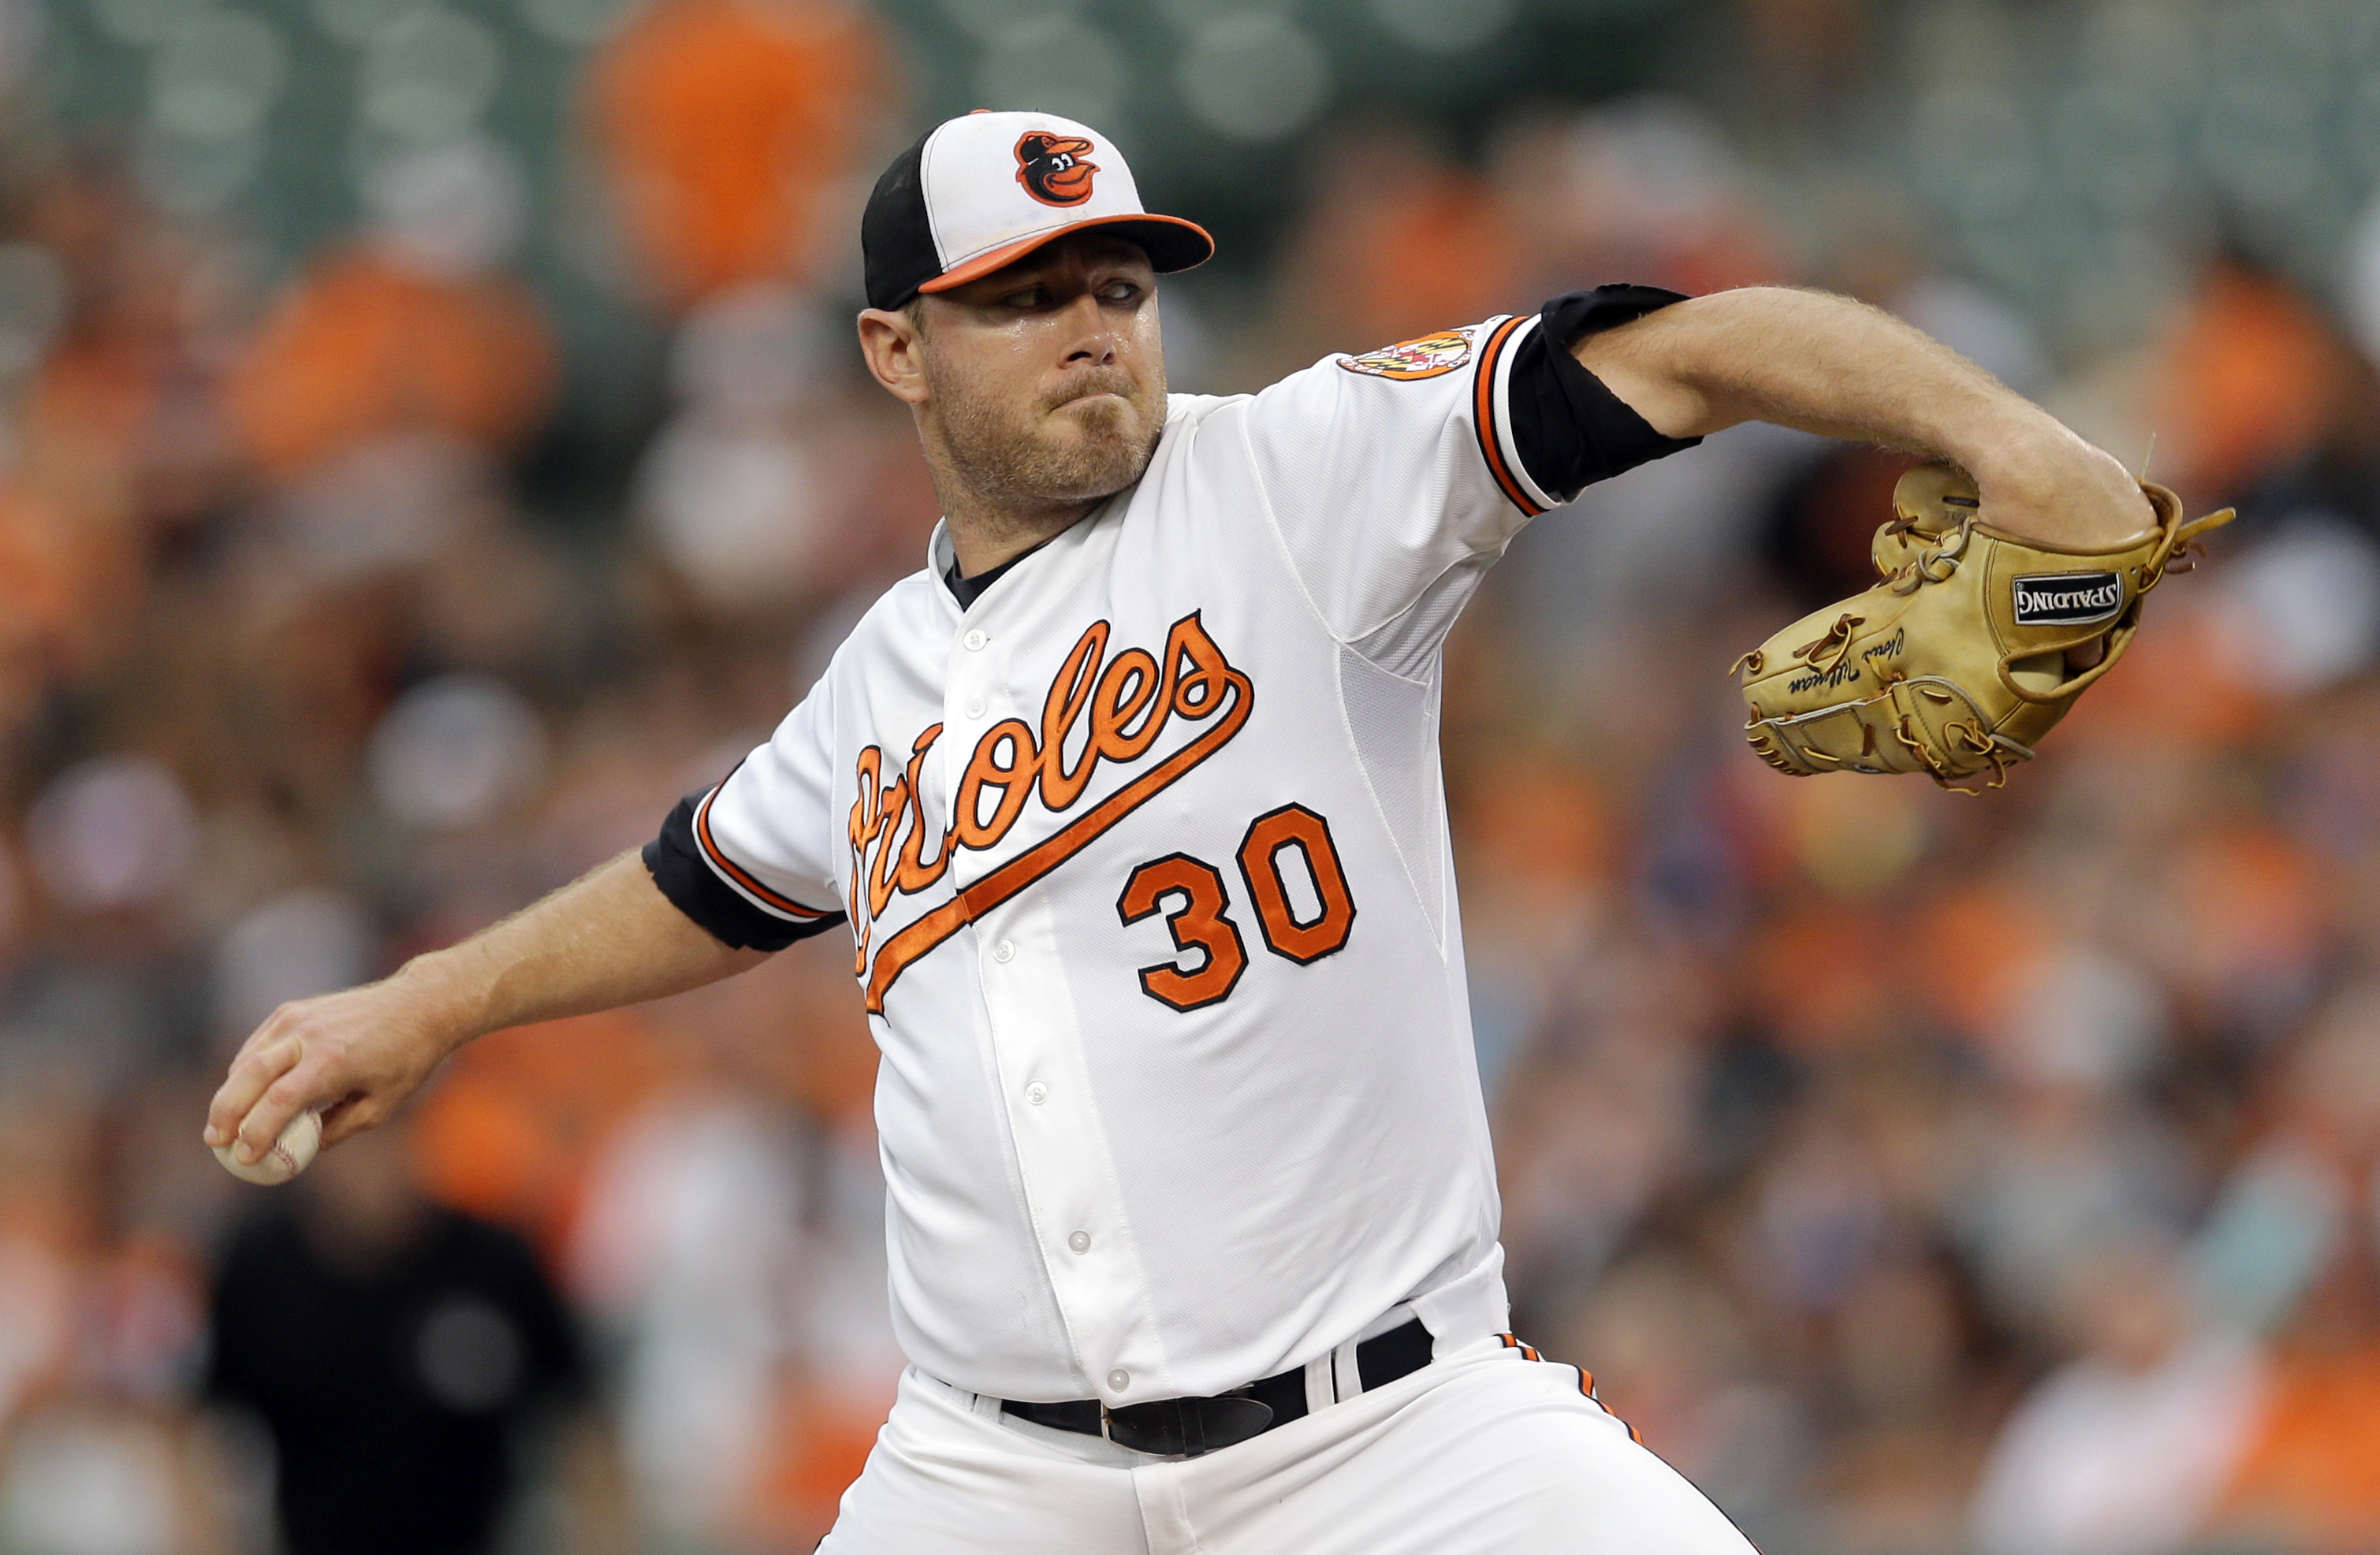 Baltimore Orioles starting pitcher Chris Tillman throws to the Atlanta Braves in the first inning of an interleague baseball game, Wednesday, July 29, 2015, in Baltimore. (AP Photo/Patrick Semansky)